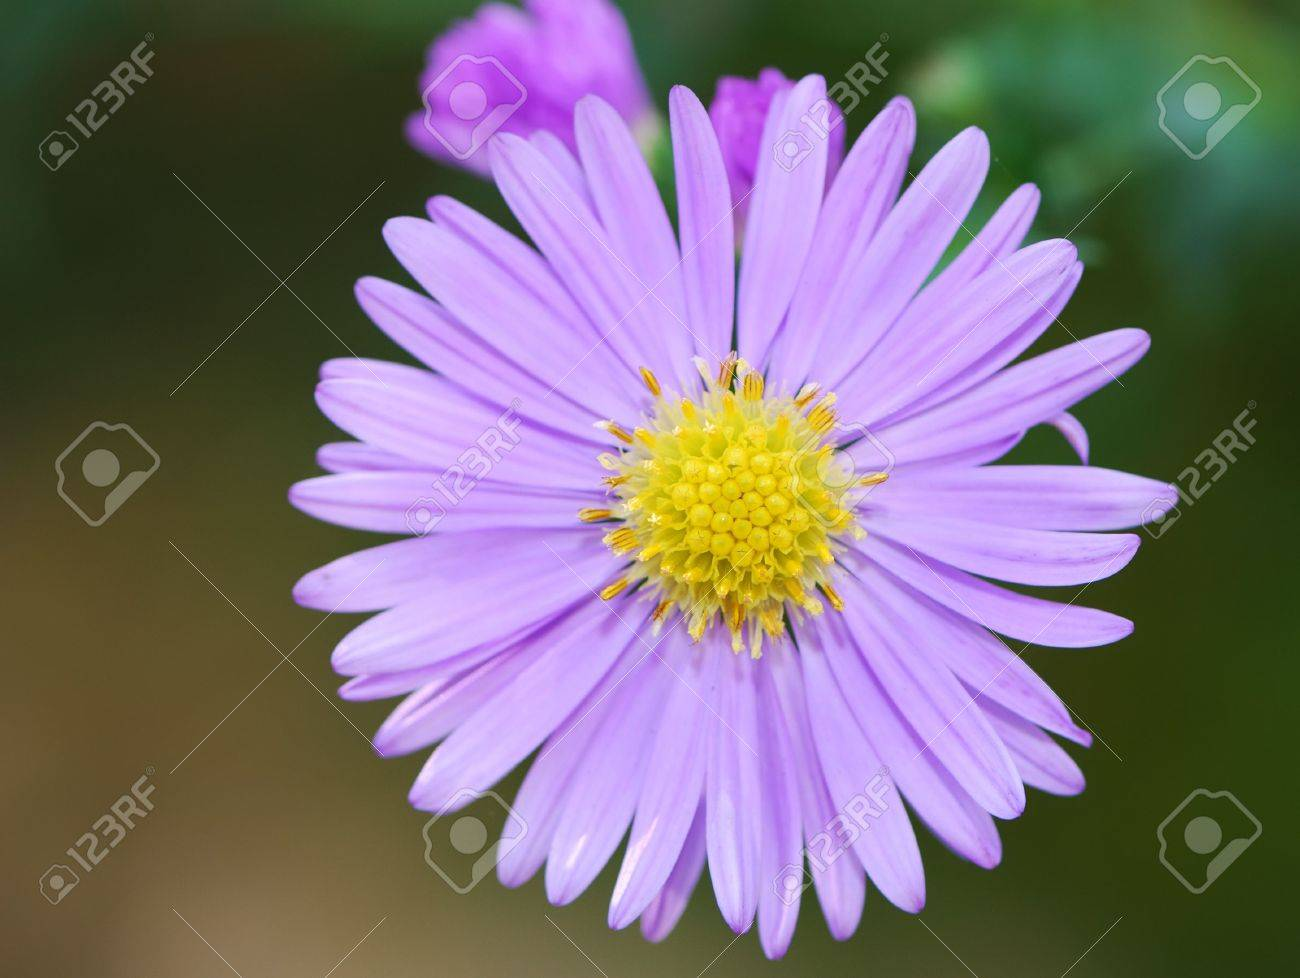 closeup of a purple aster flower stock photo, picture and royalty, Natural flower